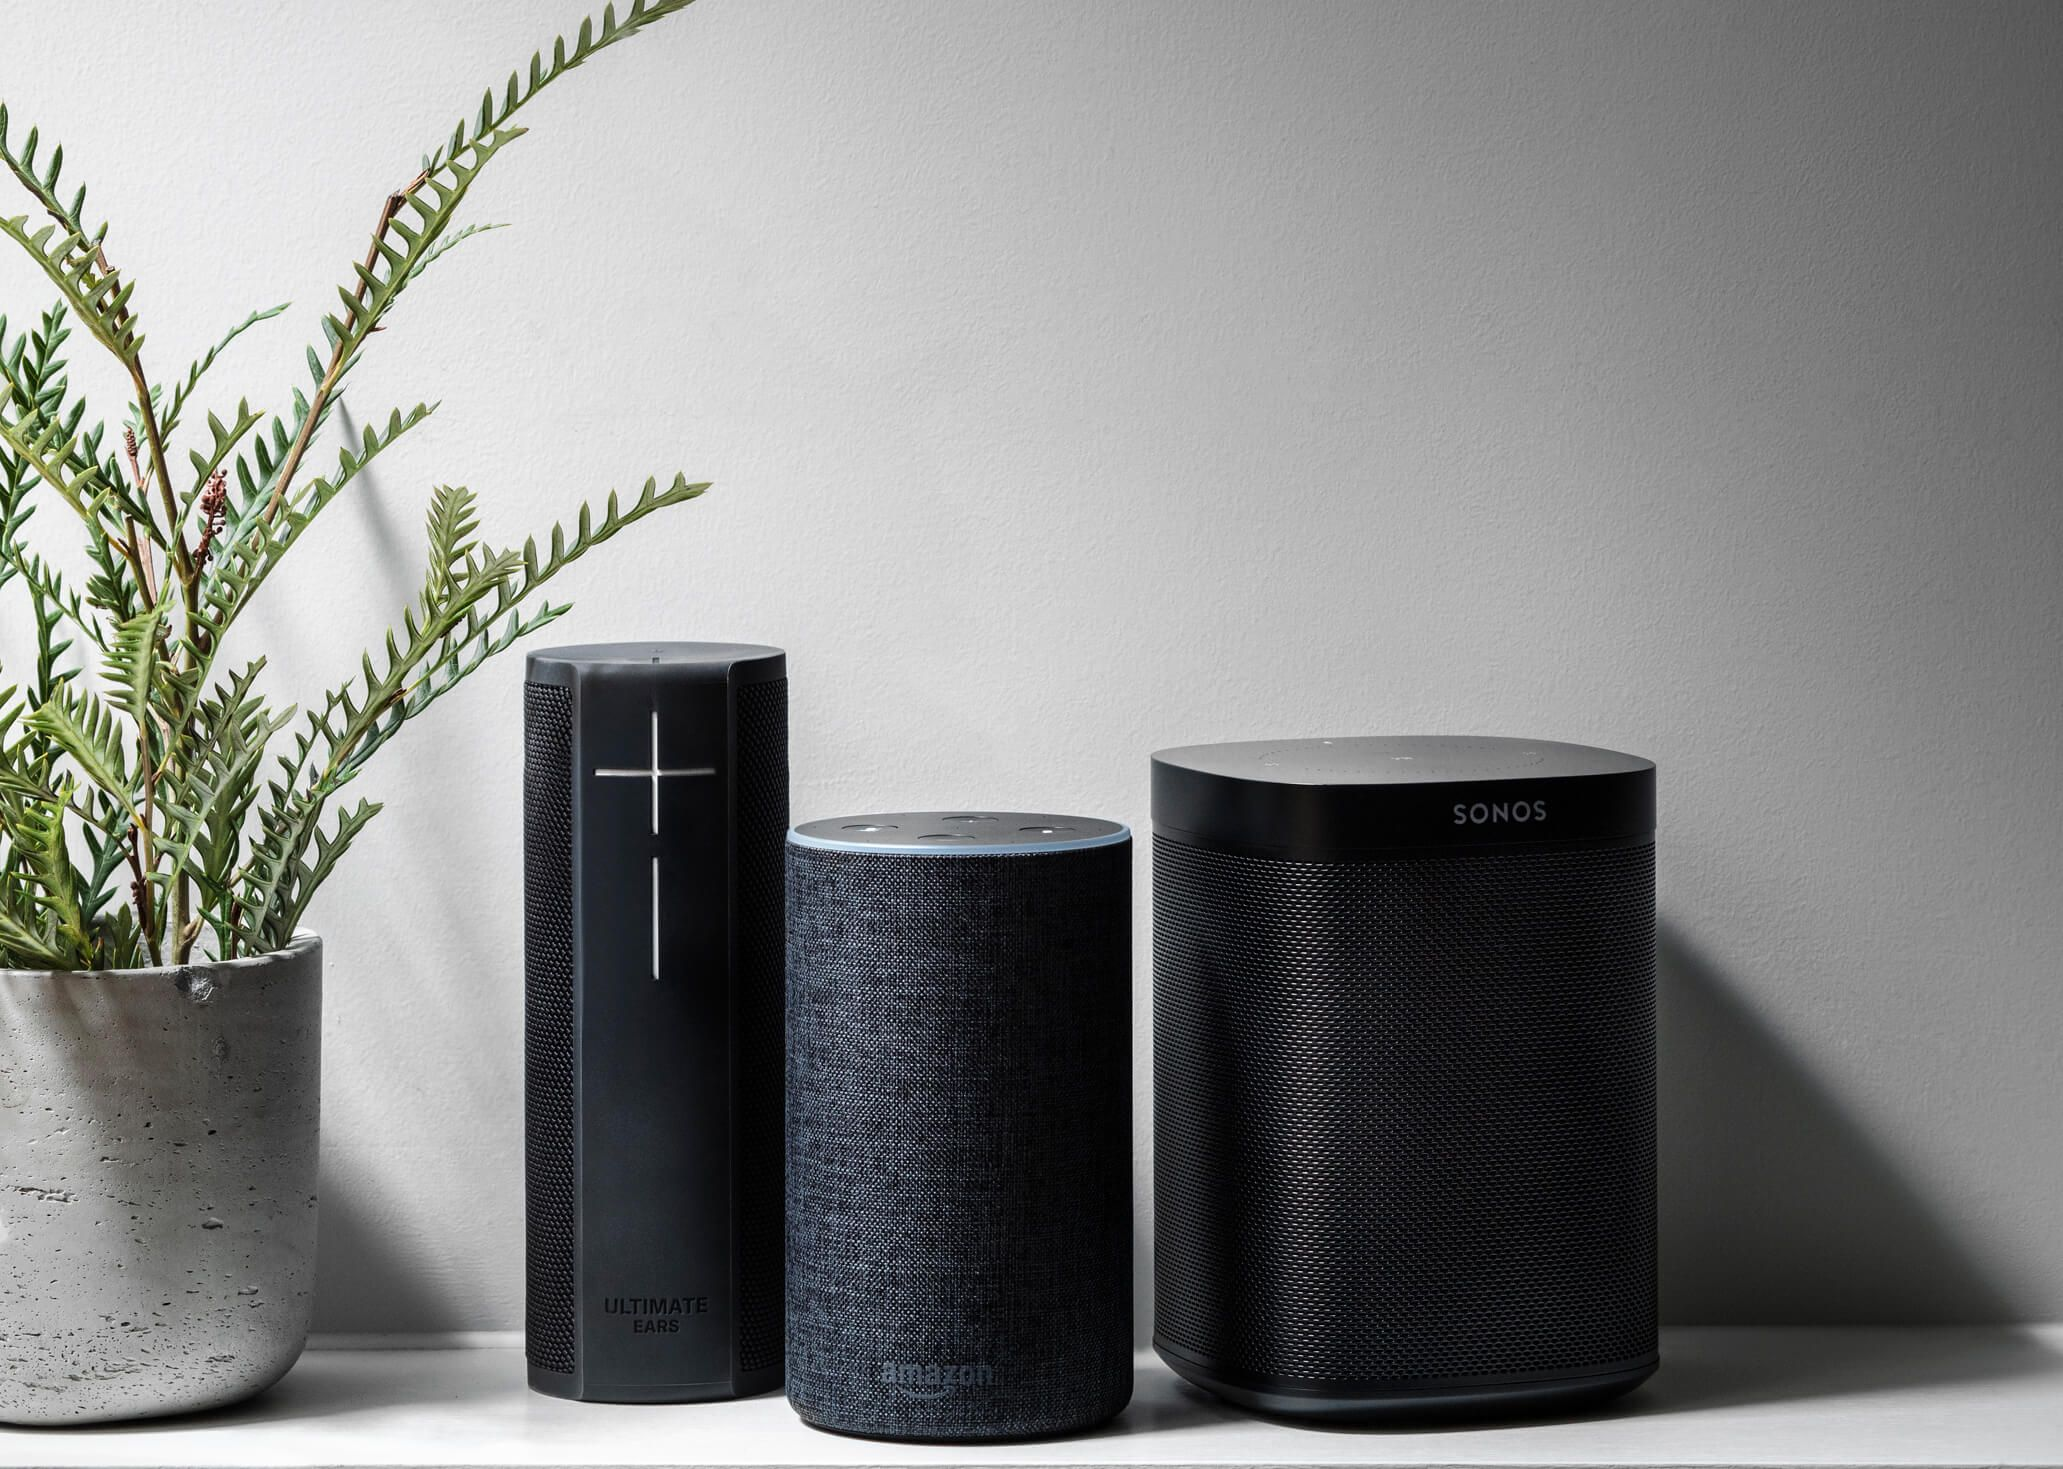 Speakers on a shelf